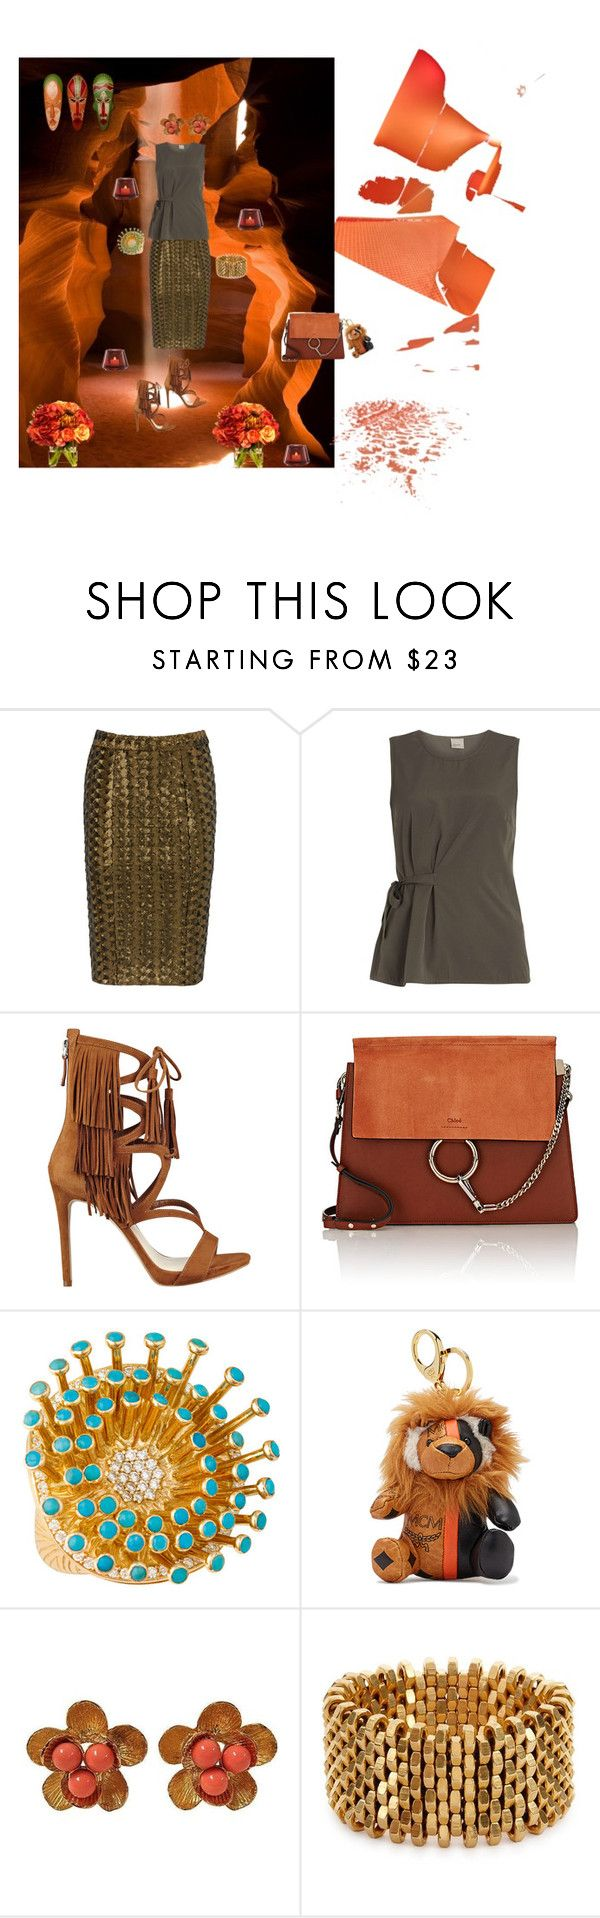 """""""Blend"""" by studiodinteriors on Polyvore featuring 3.1 Phillip Lim, Hunter Bell, Dorothy Perkins, GUESS, Chloé, Christina Debs, MCM, Alice Menter, Diane James and Baccarat"""